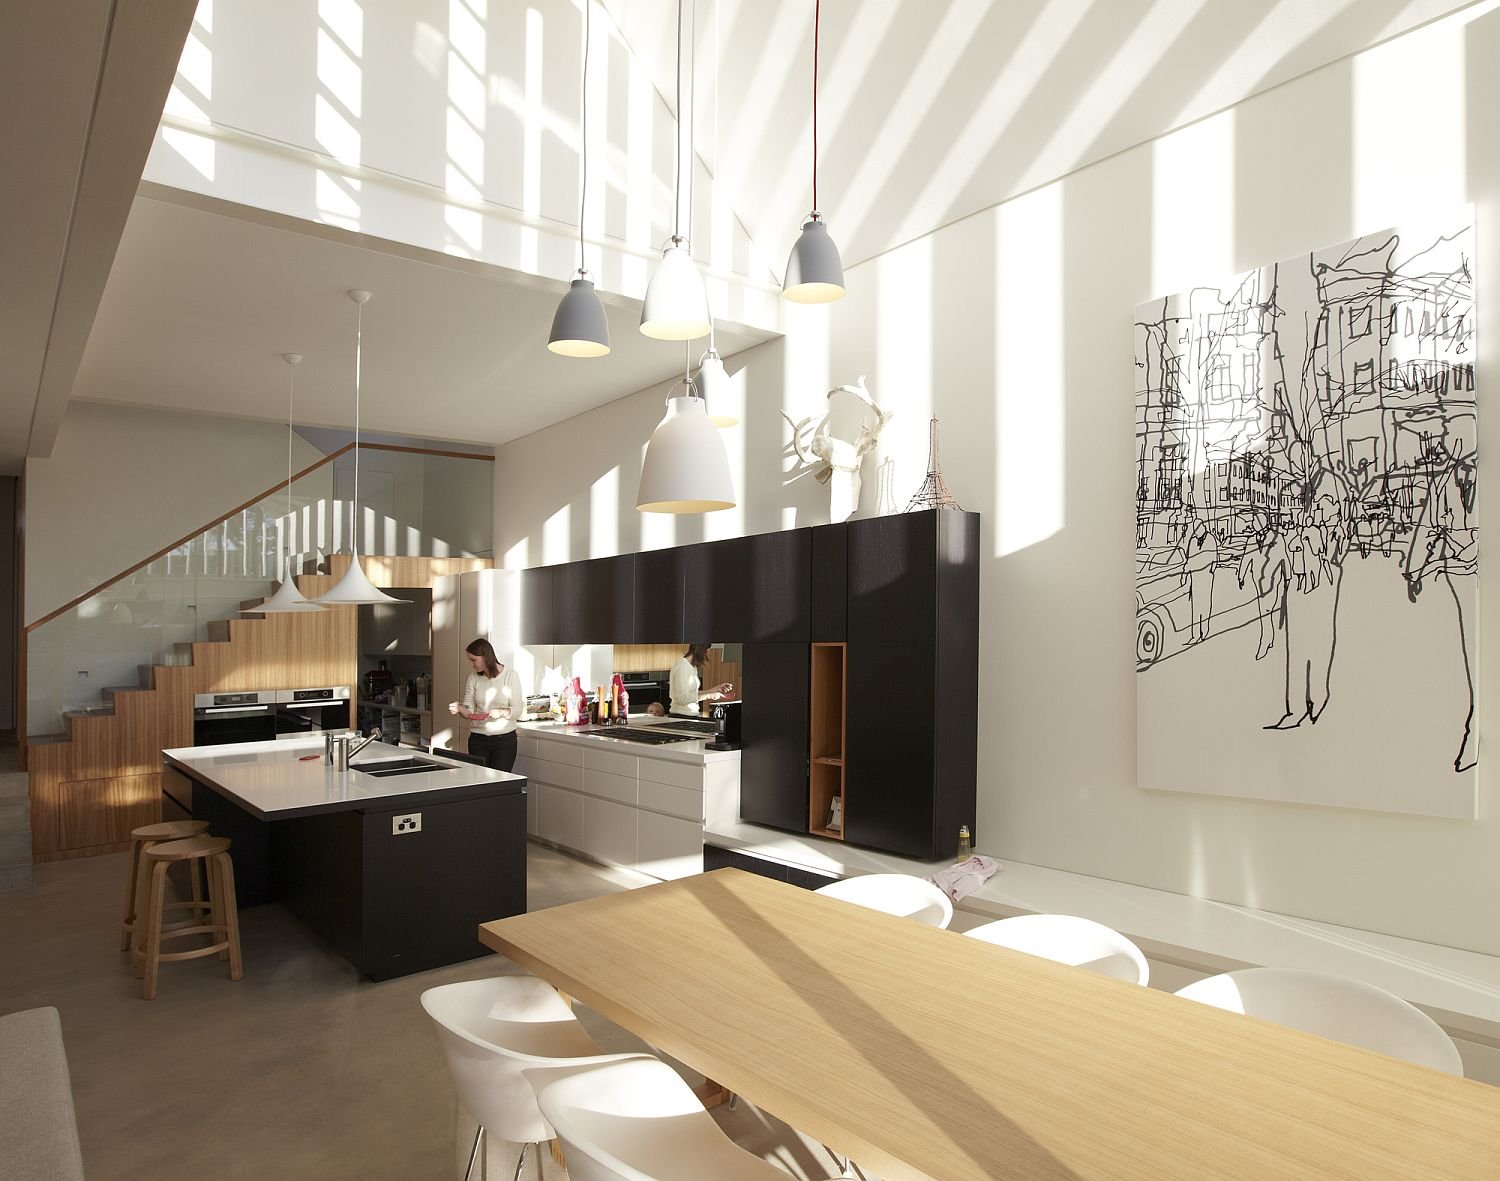 Black separates the kitchen from the dining and living space visually